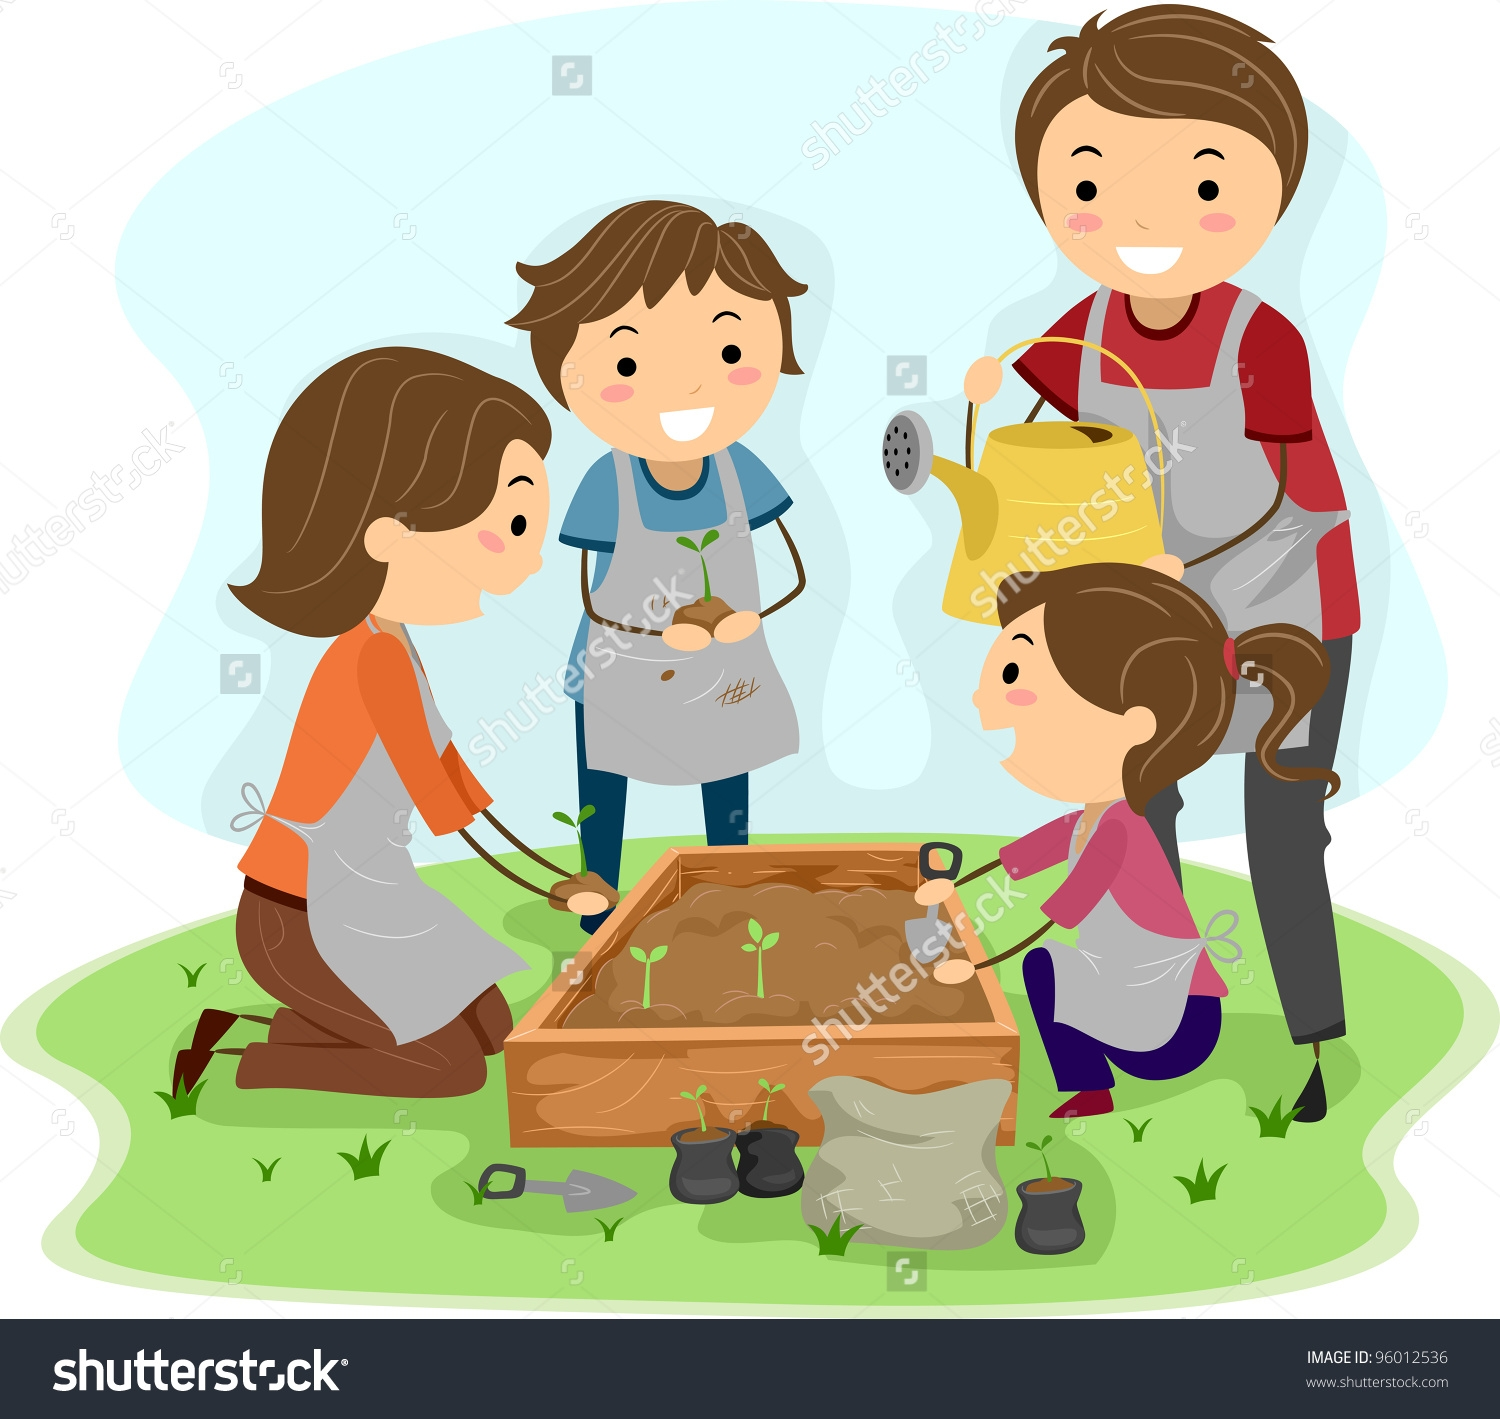 Family Cleaning Together Clipart.